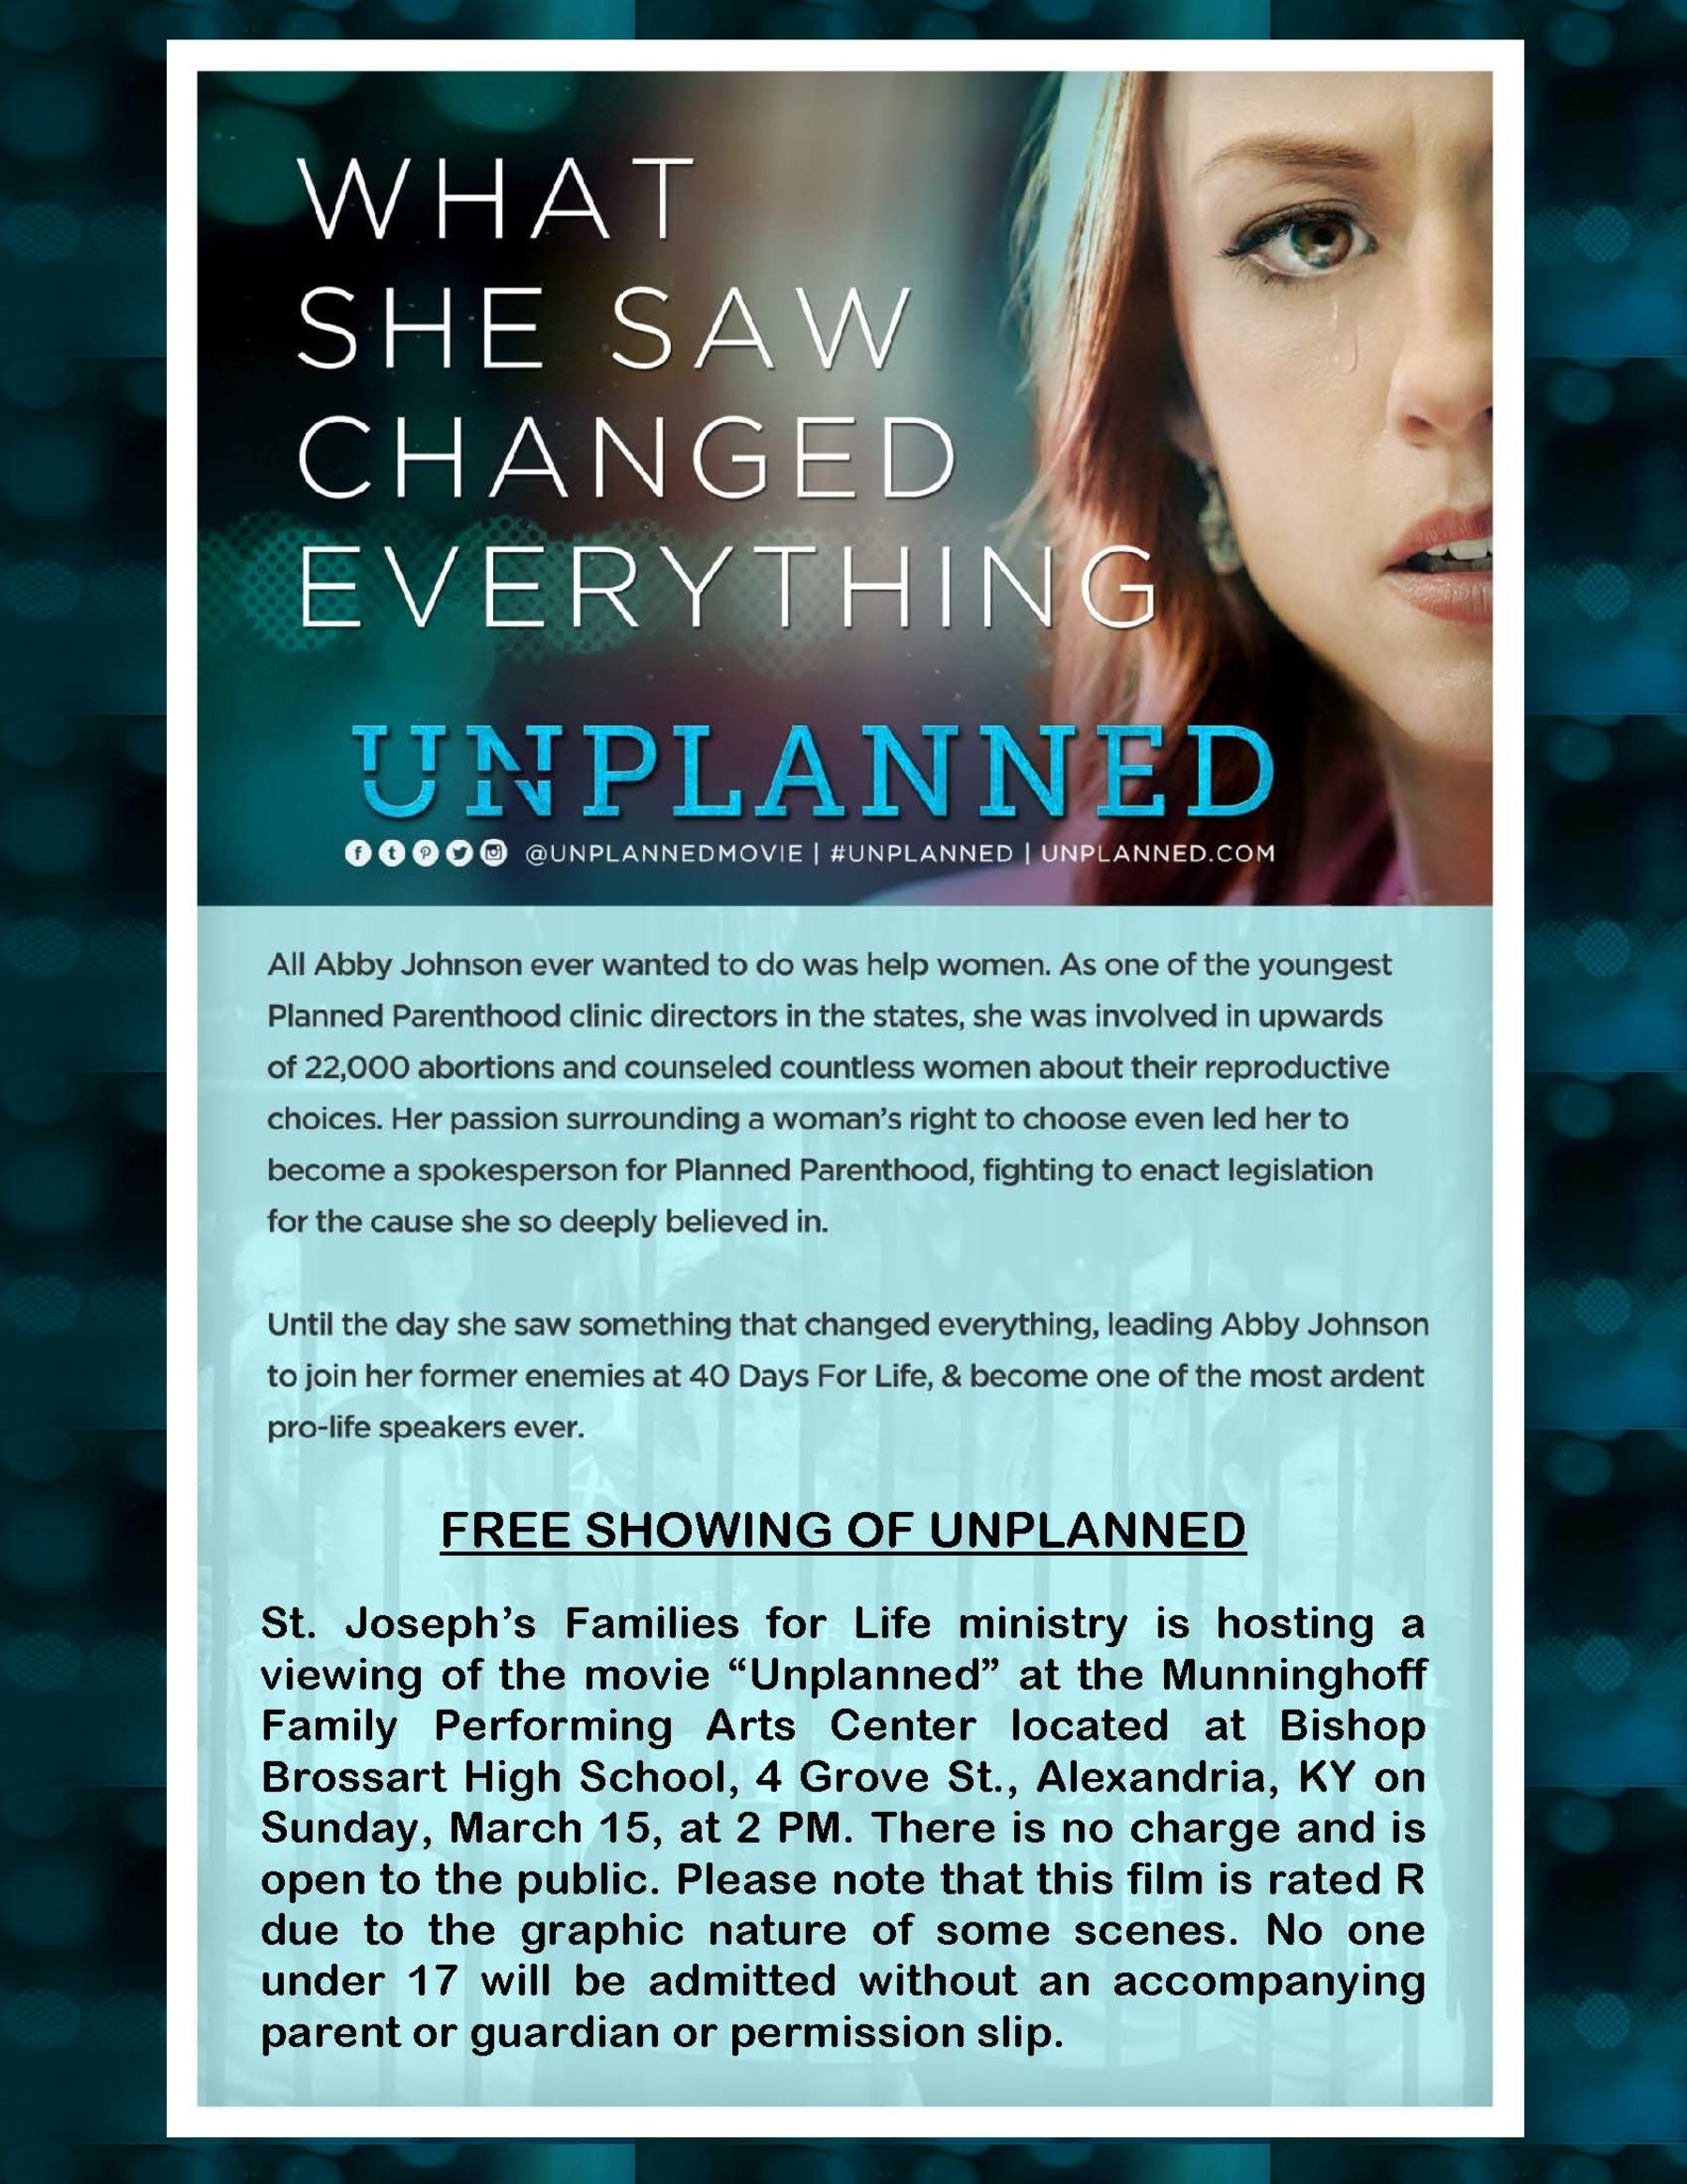 Unplanned 2 Sided 8.5 X 11 Flyer Page 1